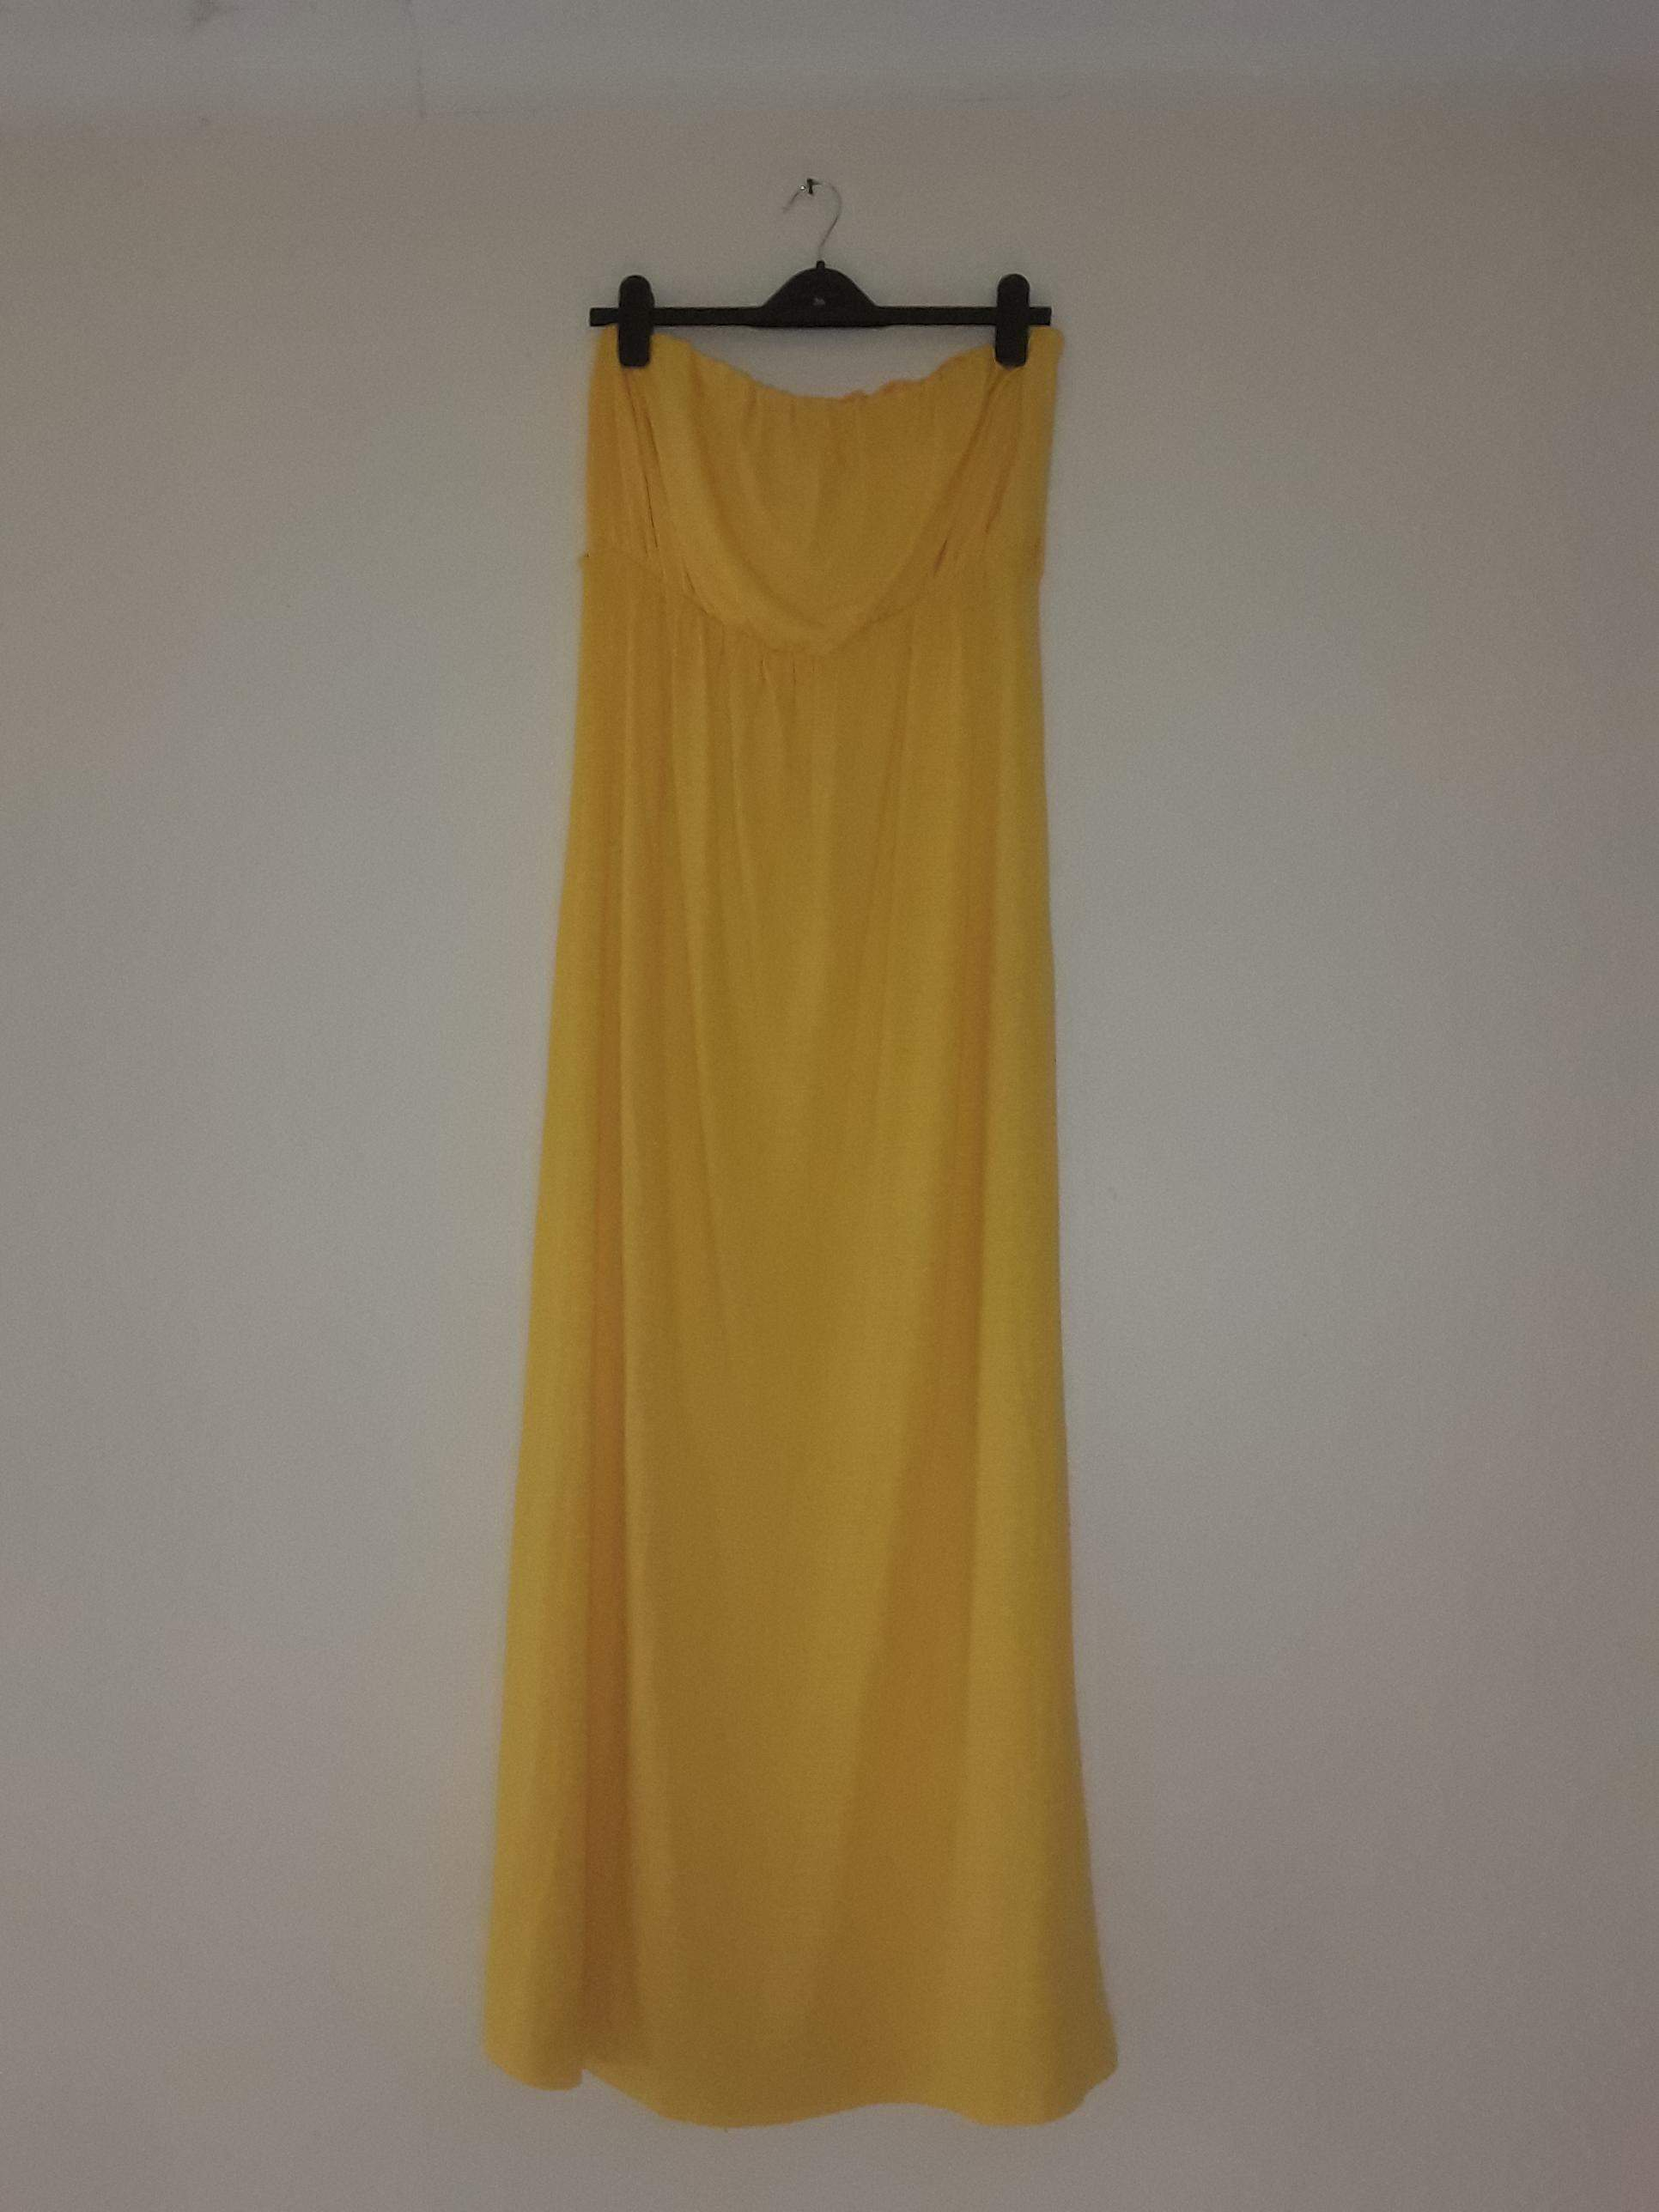 Mr Price Yellow Maxi Dress